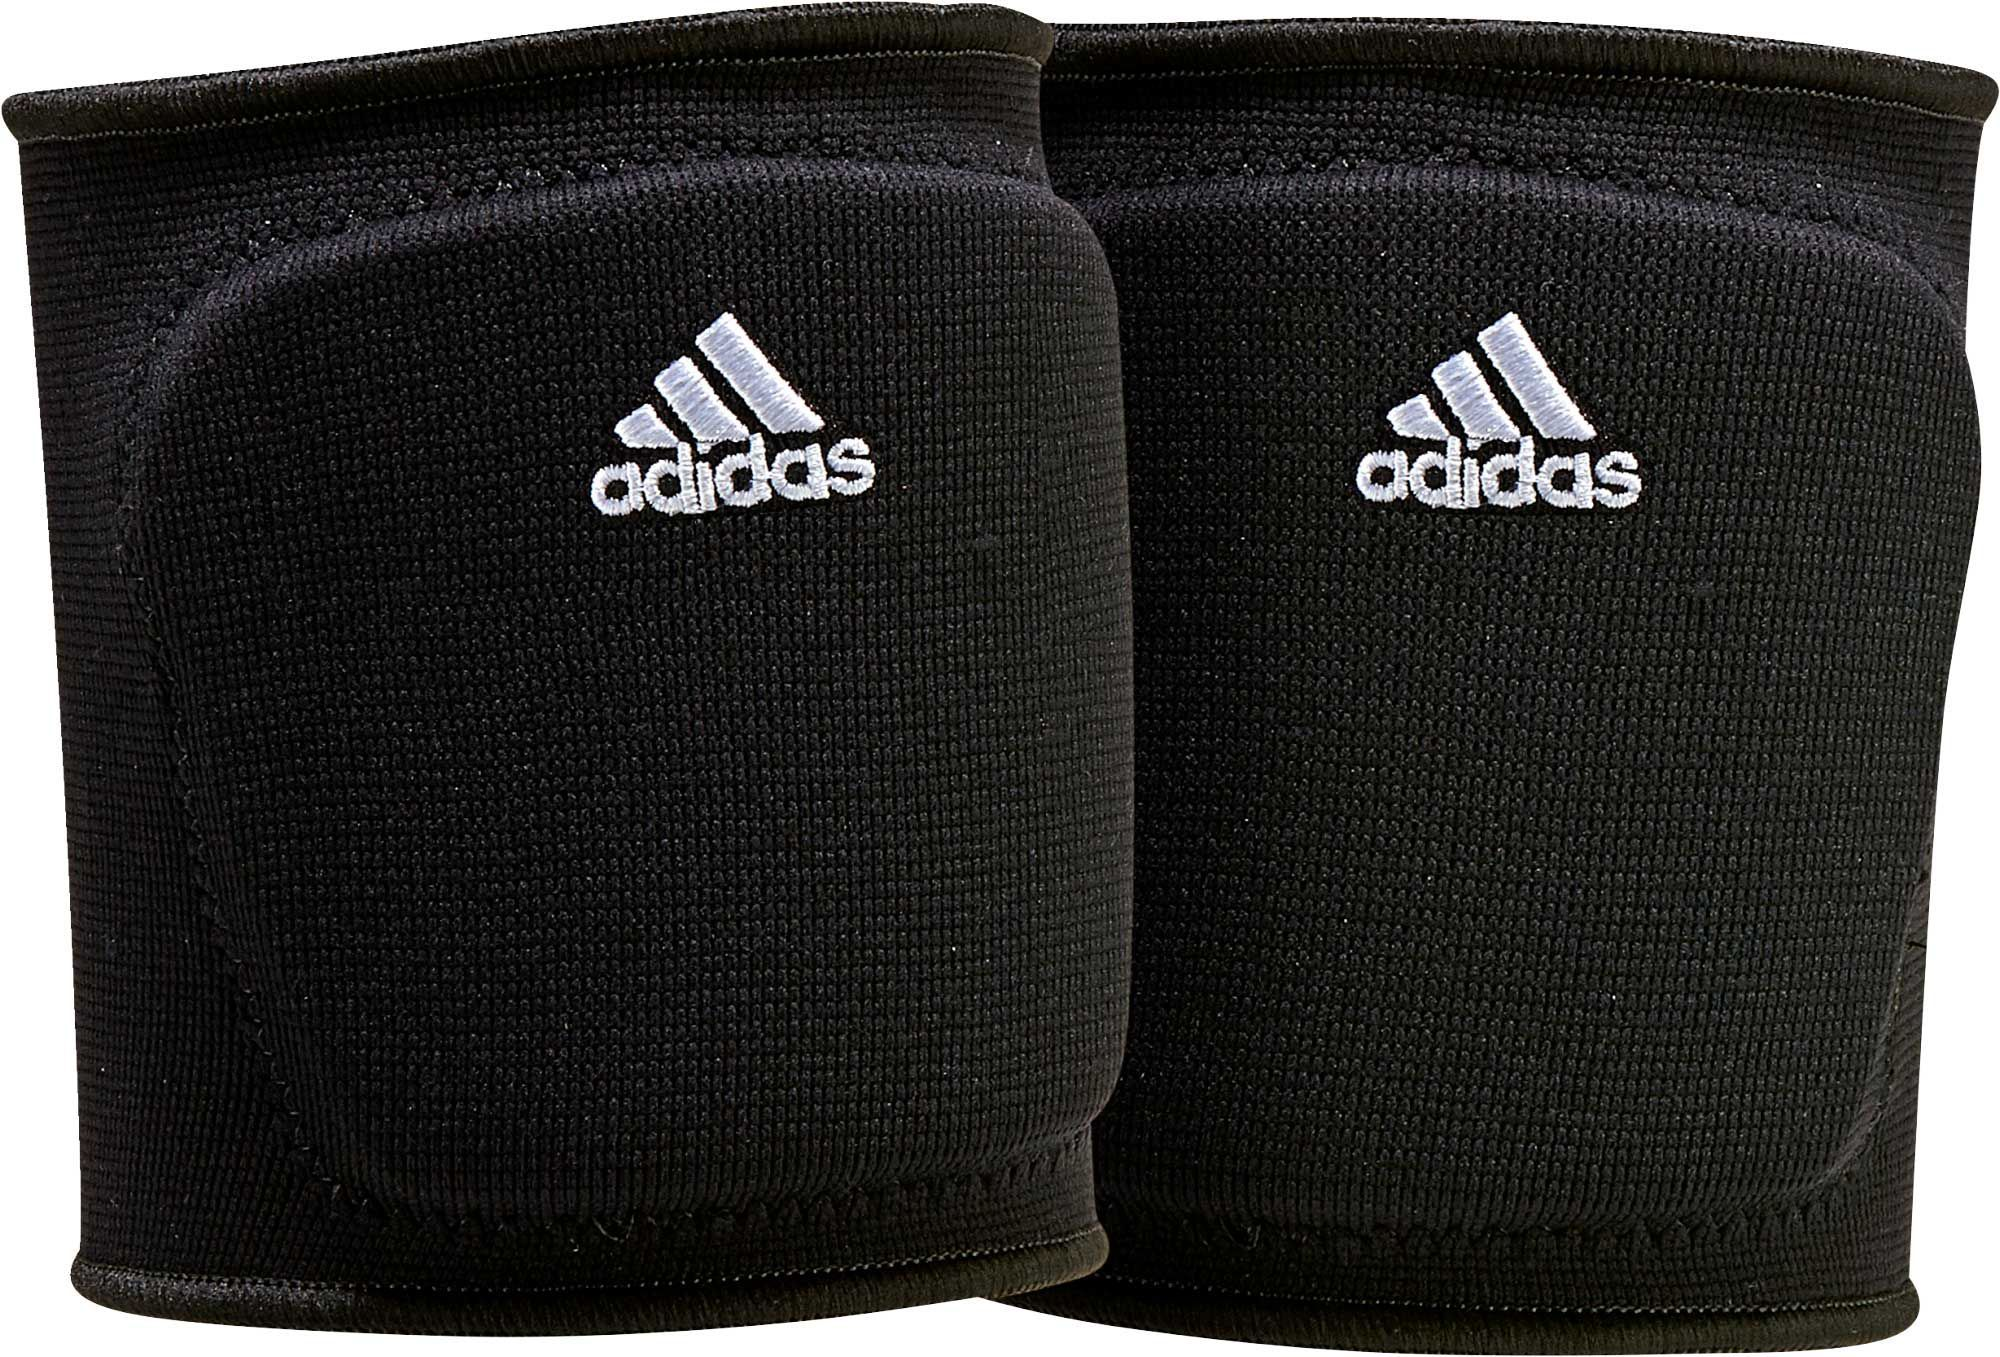 Adidas Adult 5 Volleyball Knee Pads In 2020 Volleyball Knee Pads Knee Pads Volleyball